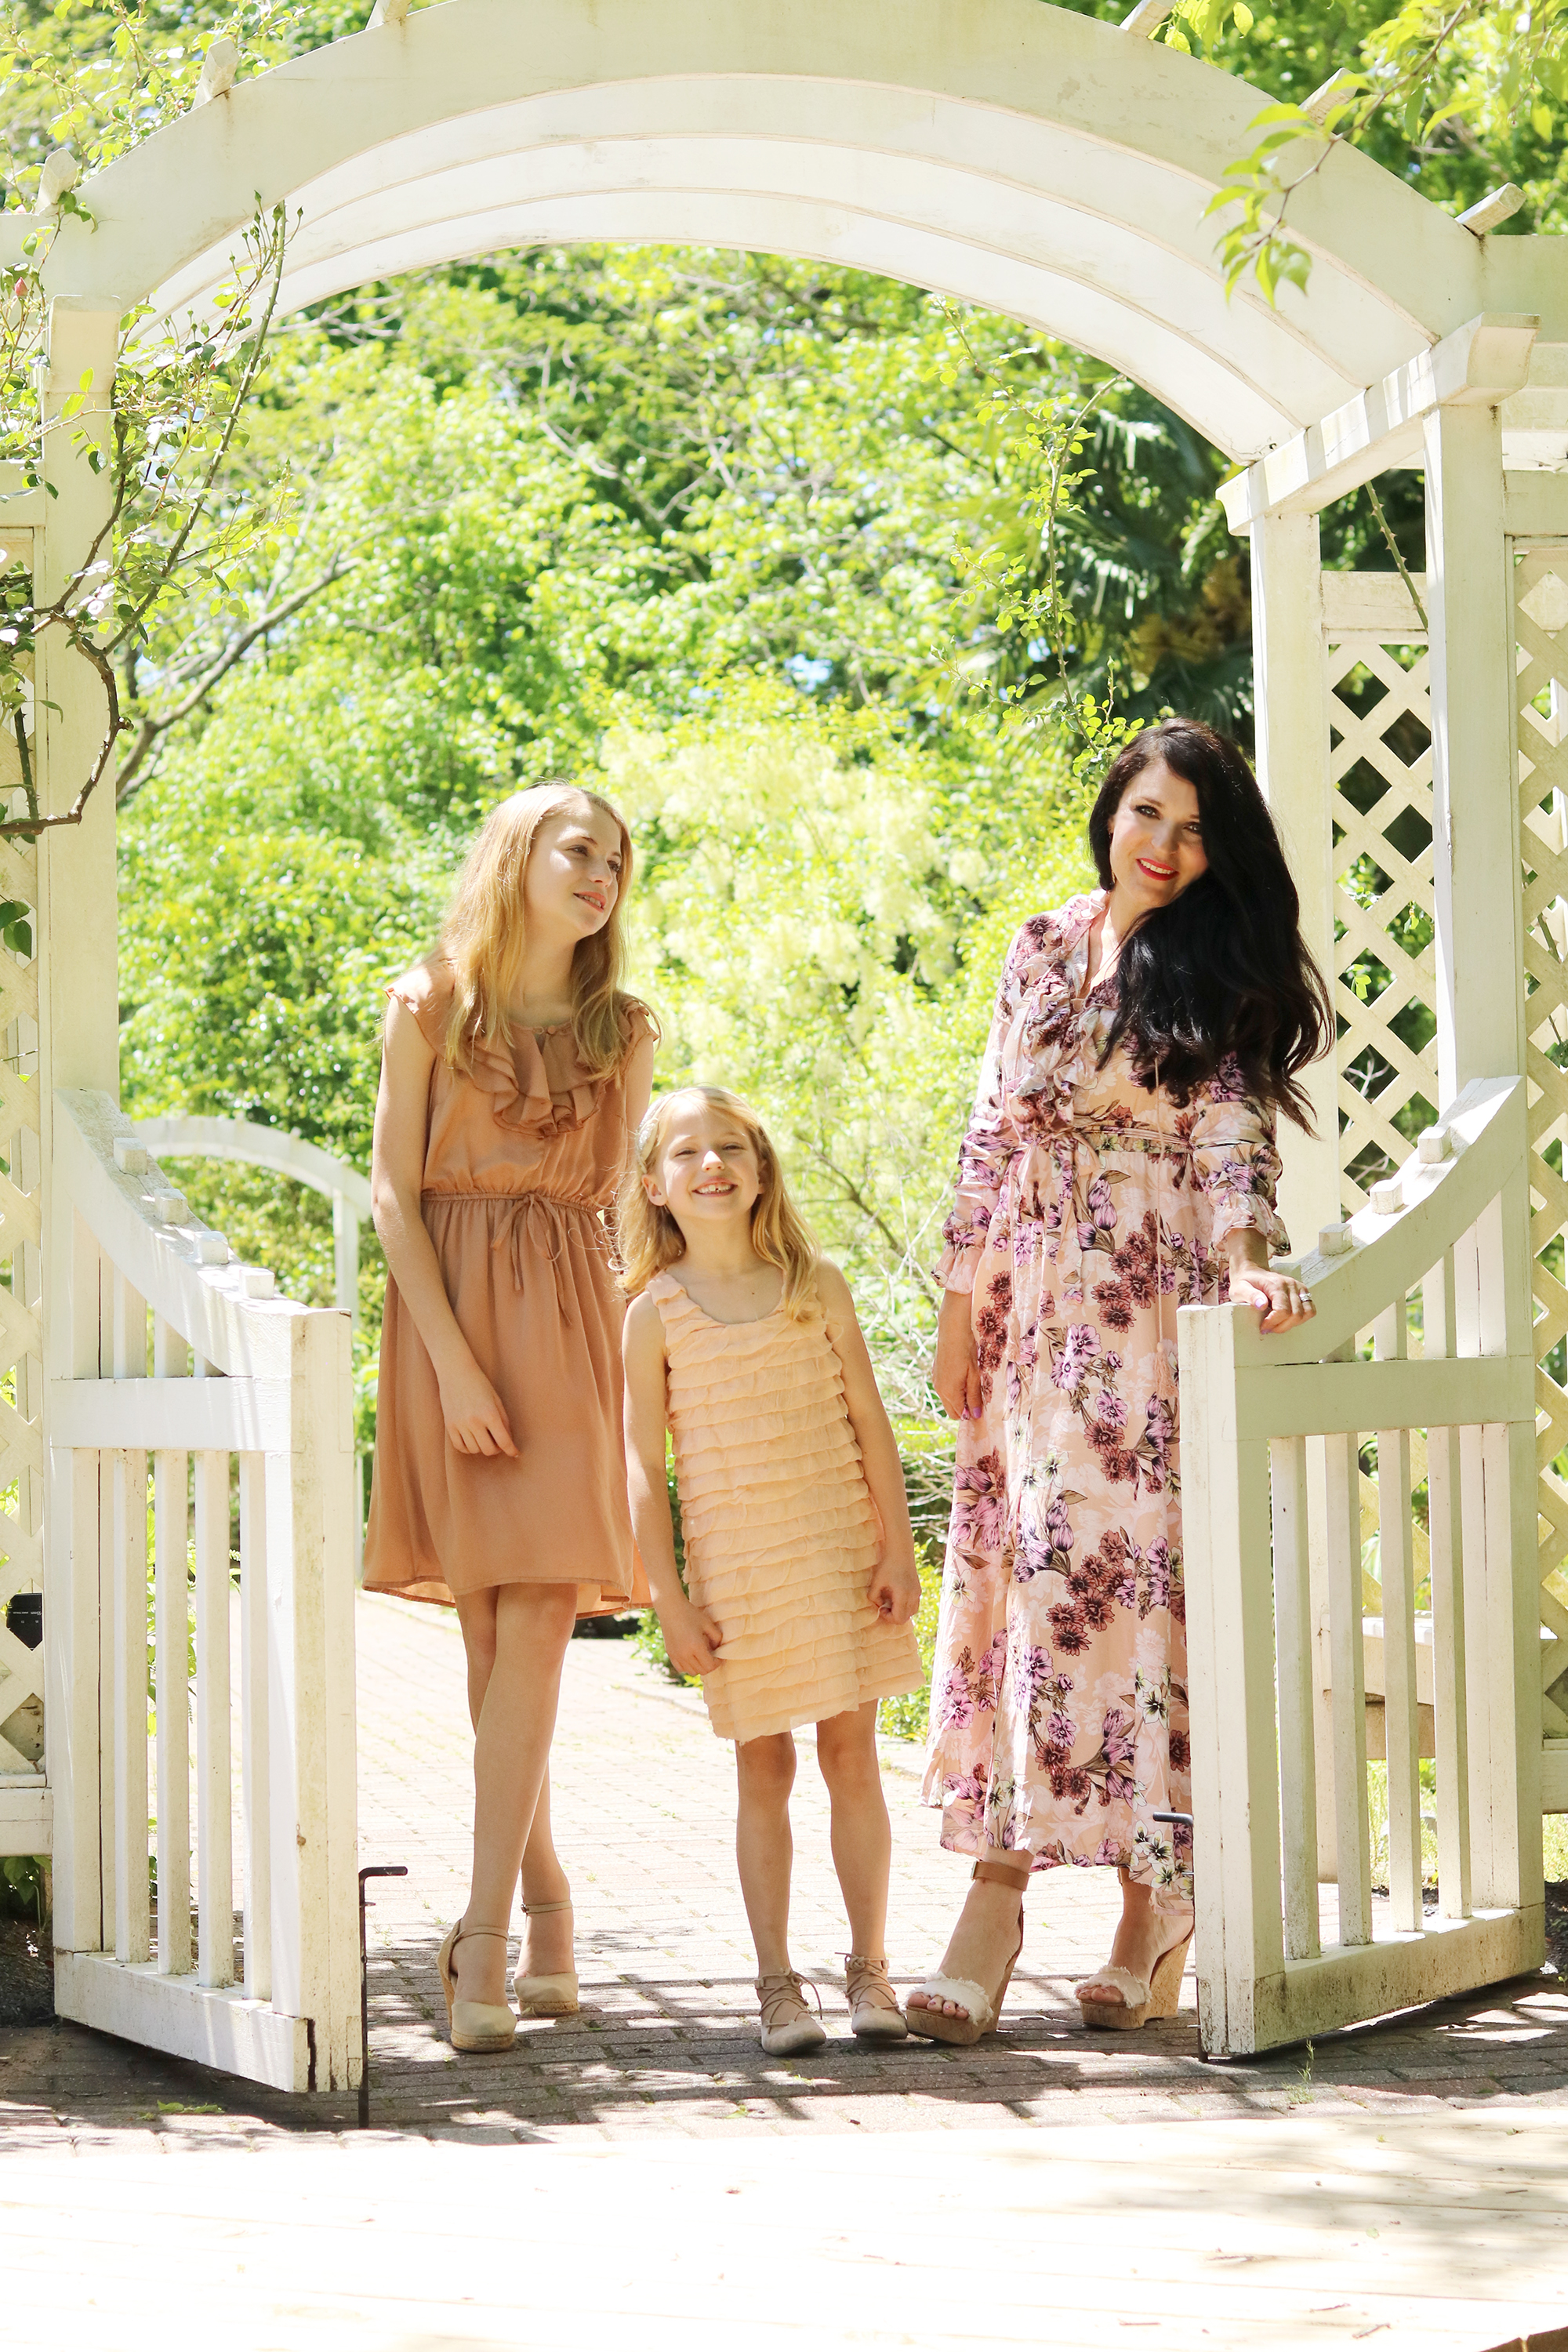 The perfect time to wear Mother Daughter Matching Dresses is for Mother's Day! Sharing a few cute matching dresses to wear this spring! || Darling Darleen www.darlingdarleen.com #darlingdarleen